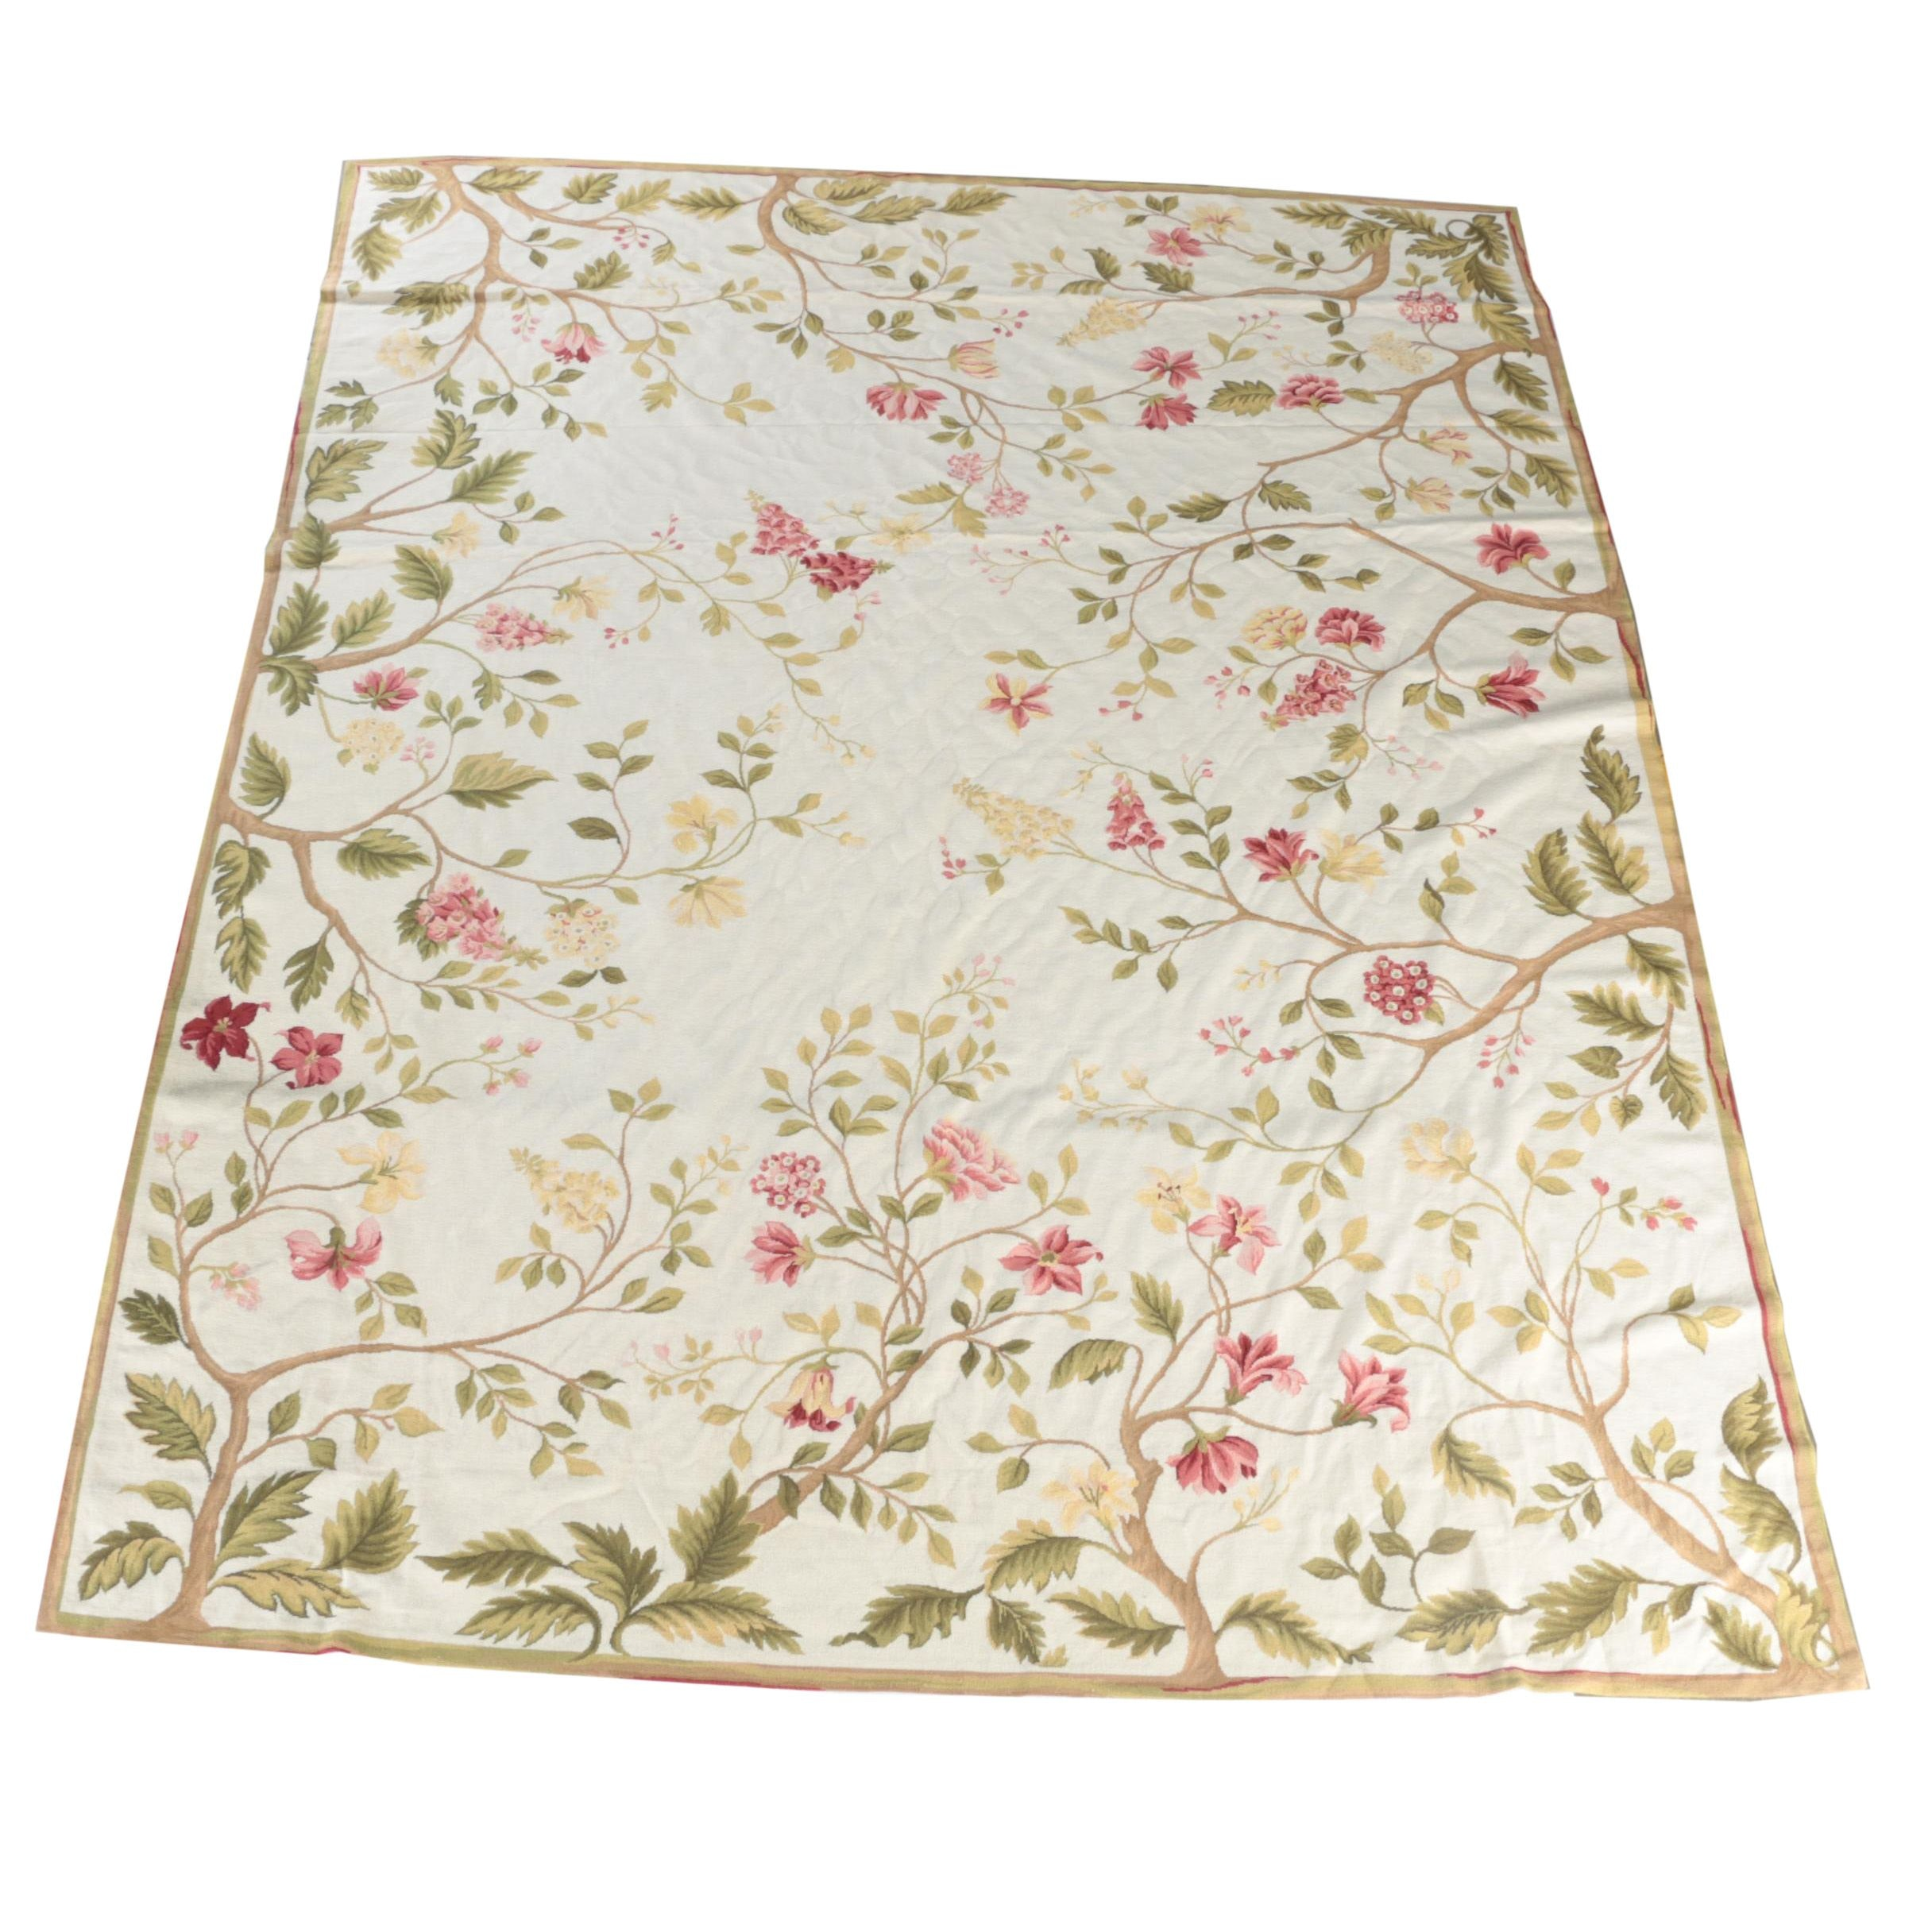 Needlepoint Floral Wool Room Size Rug